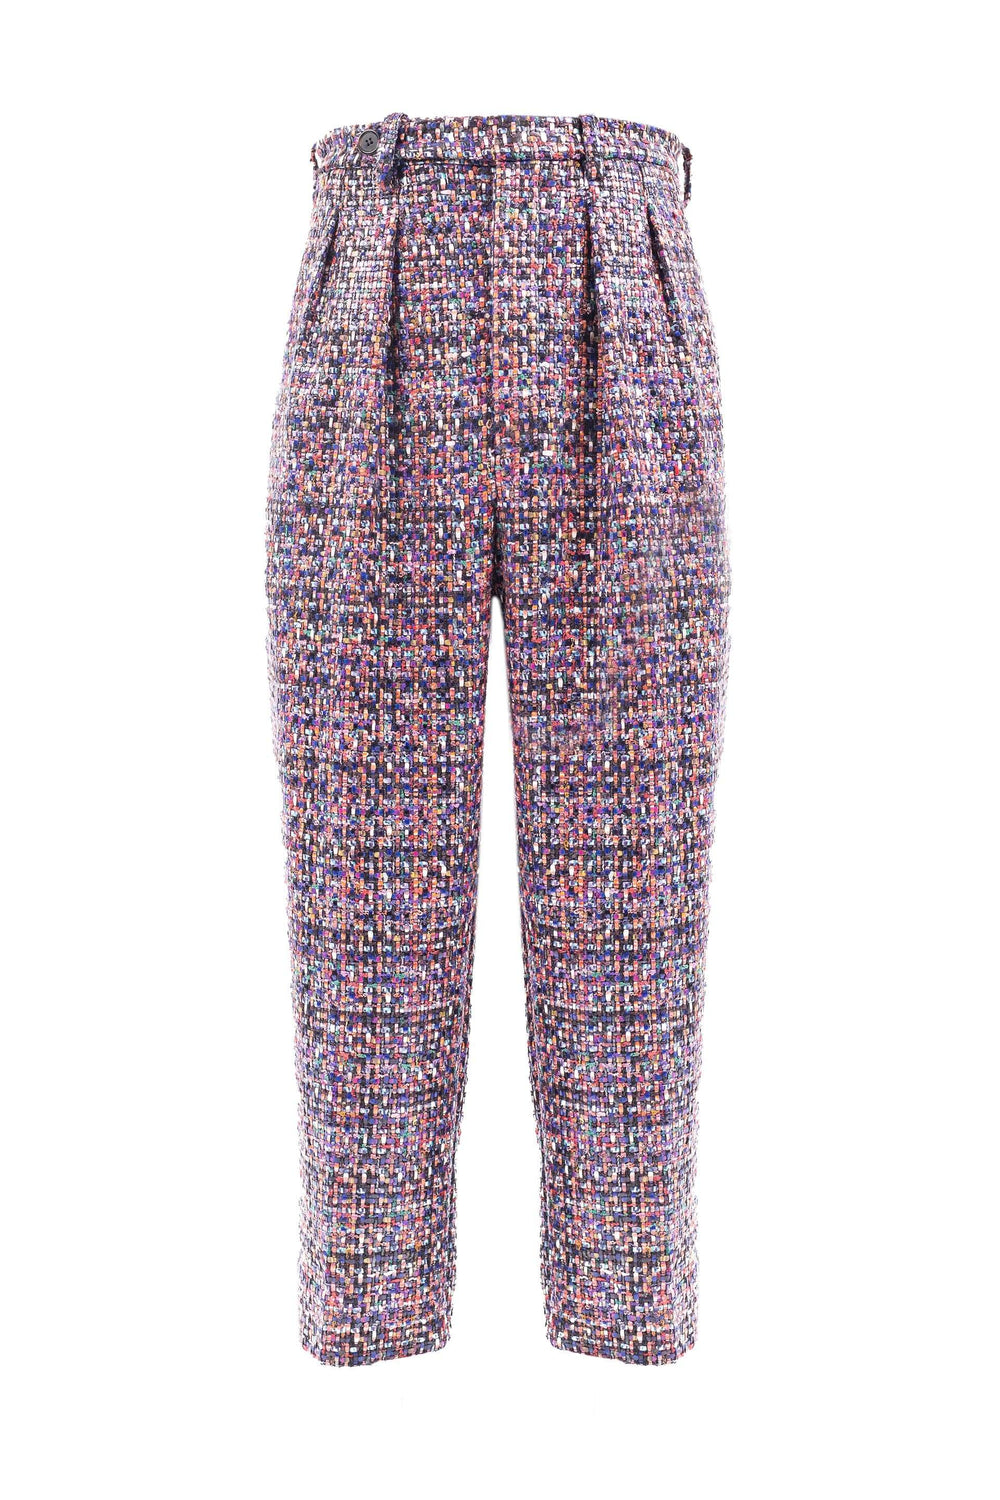 Boucle trousers